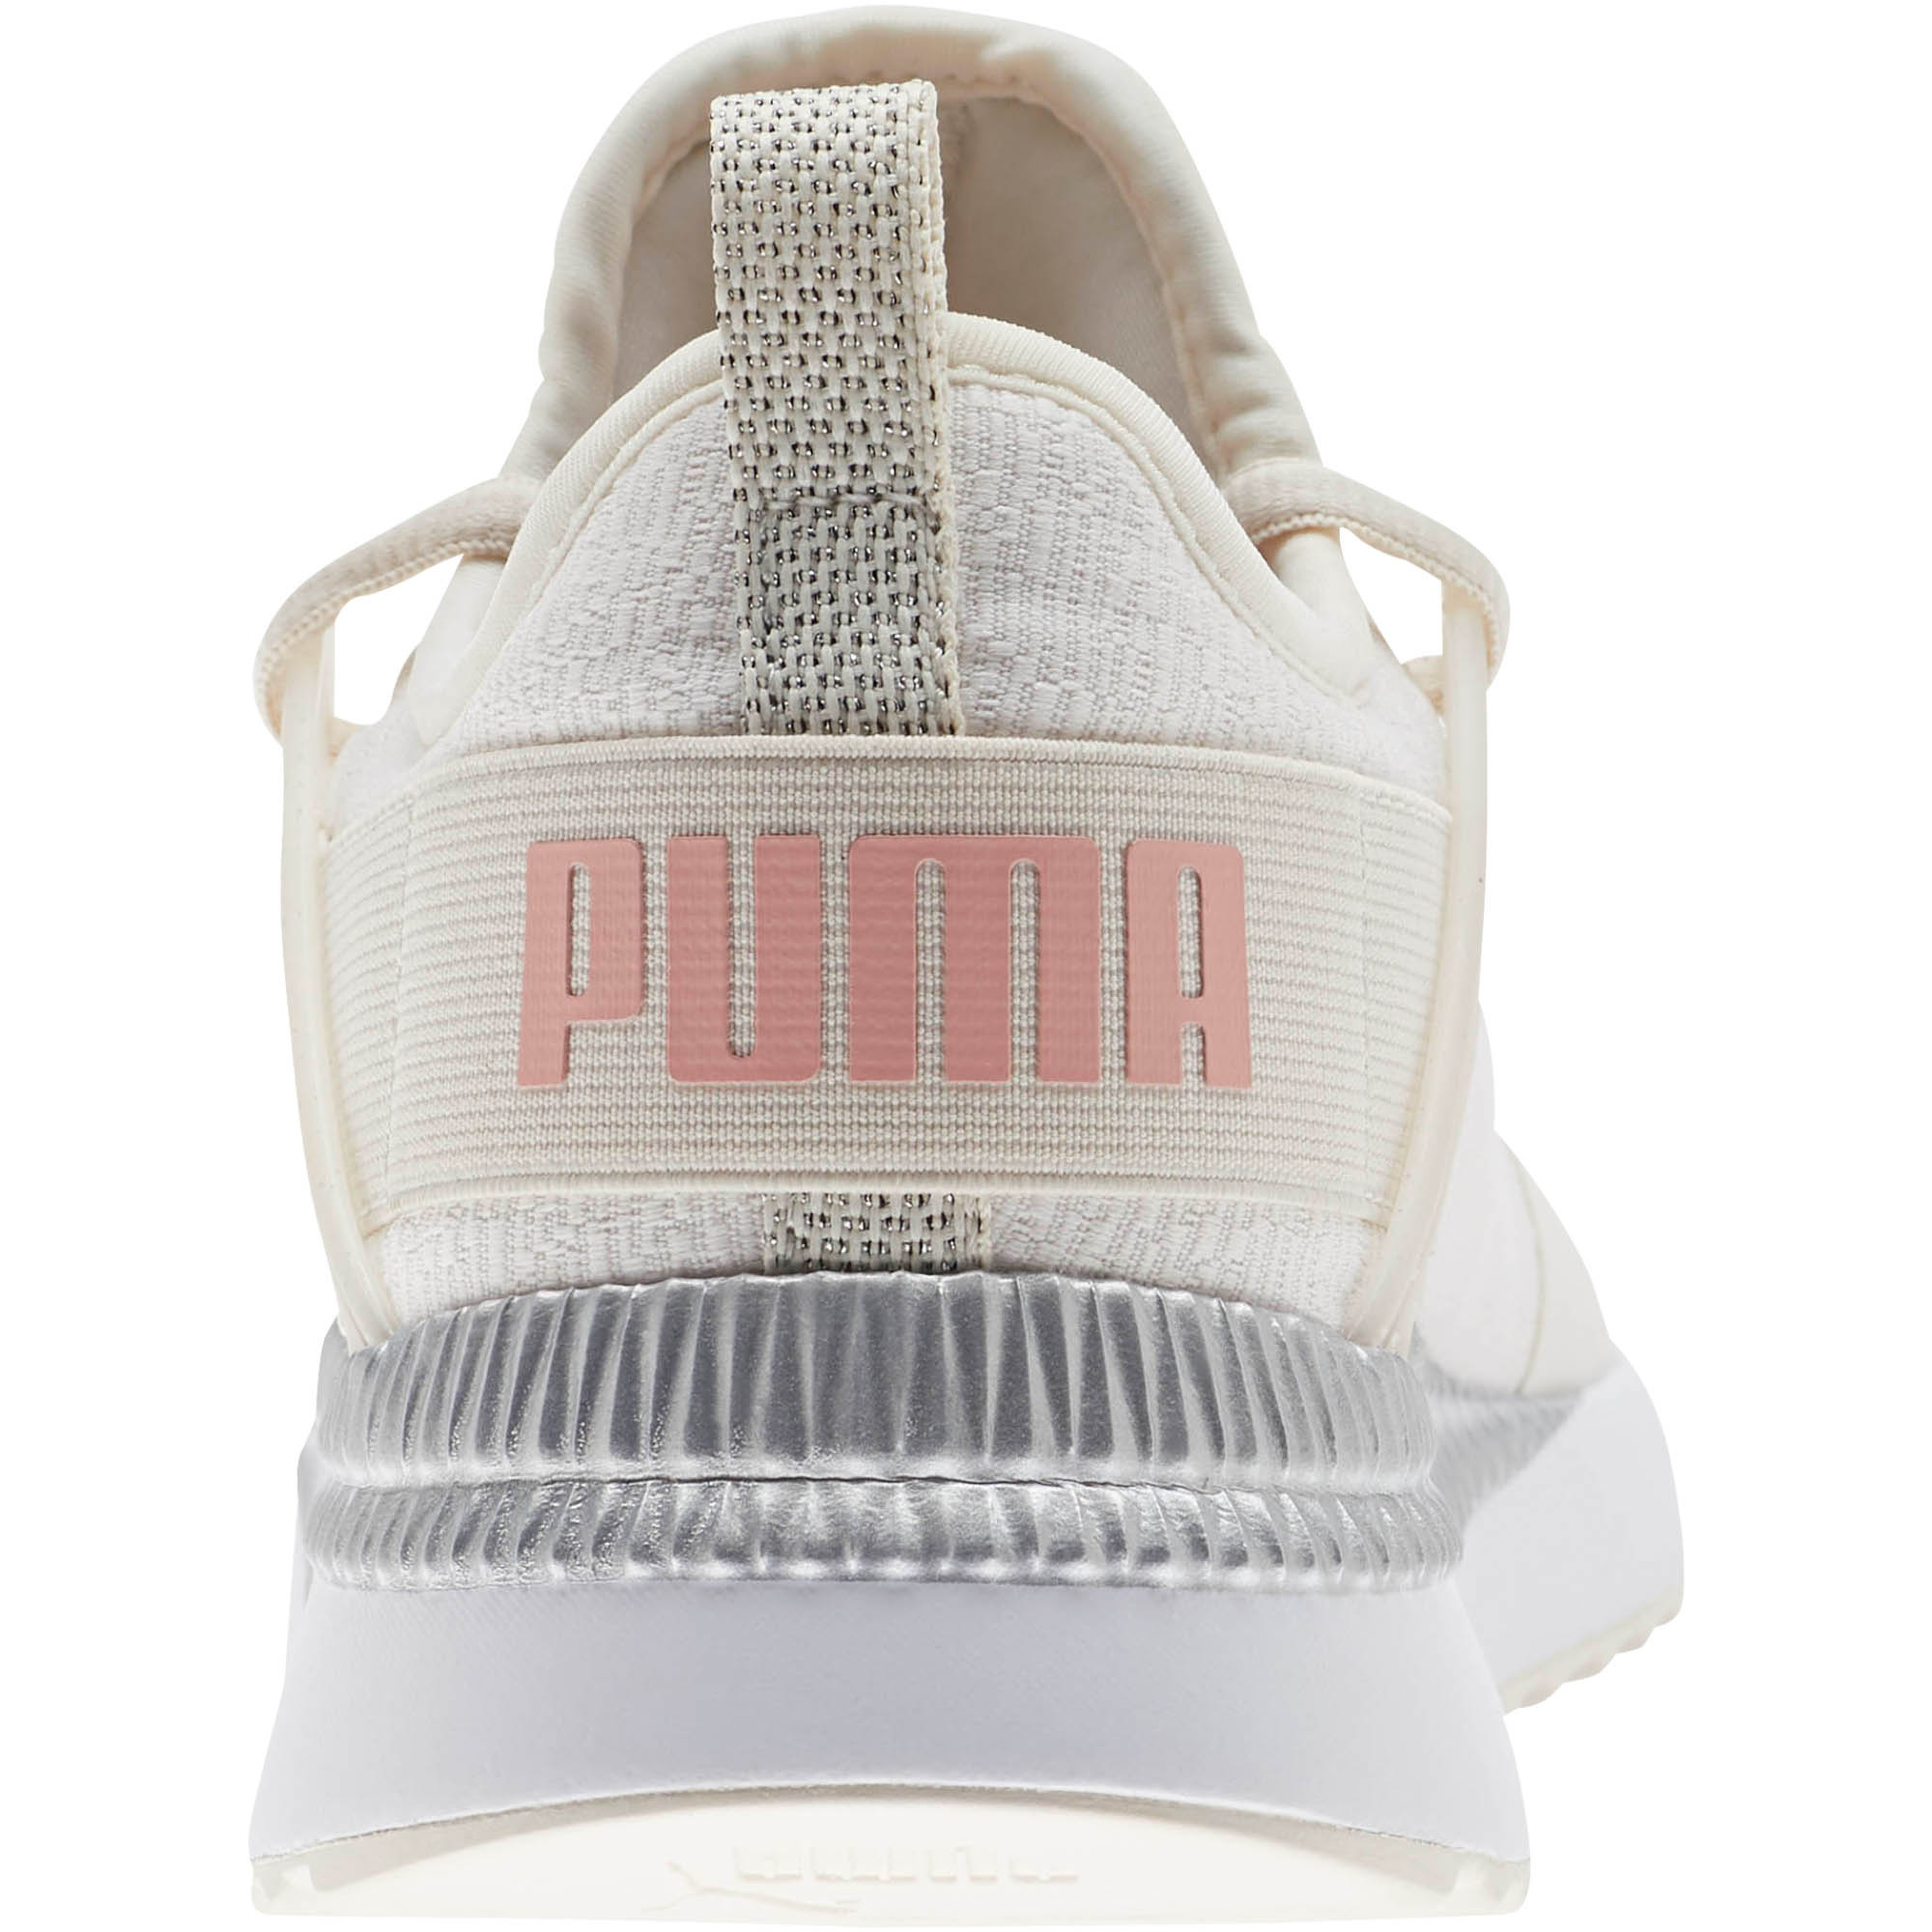 PUMA-Pacer-Next-Cage-Glitter-Women-039-s-Sneakers-Women-Shoe-Basics thumbnail 3